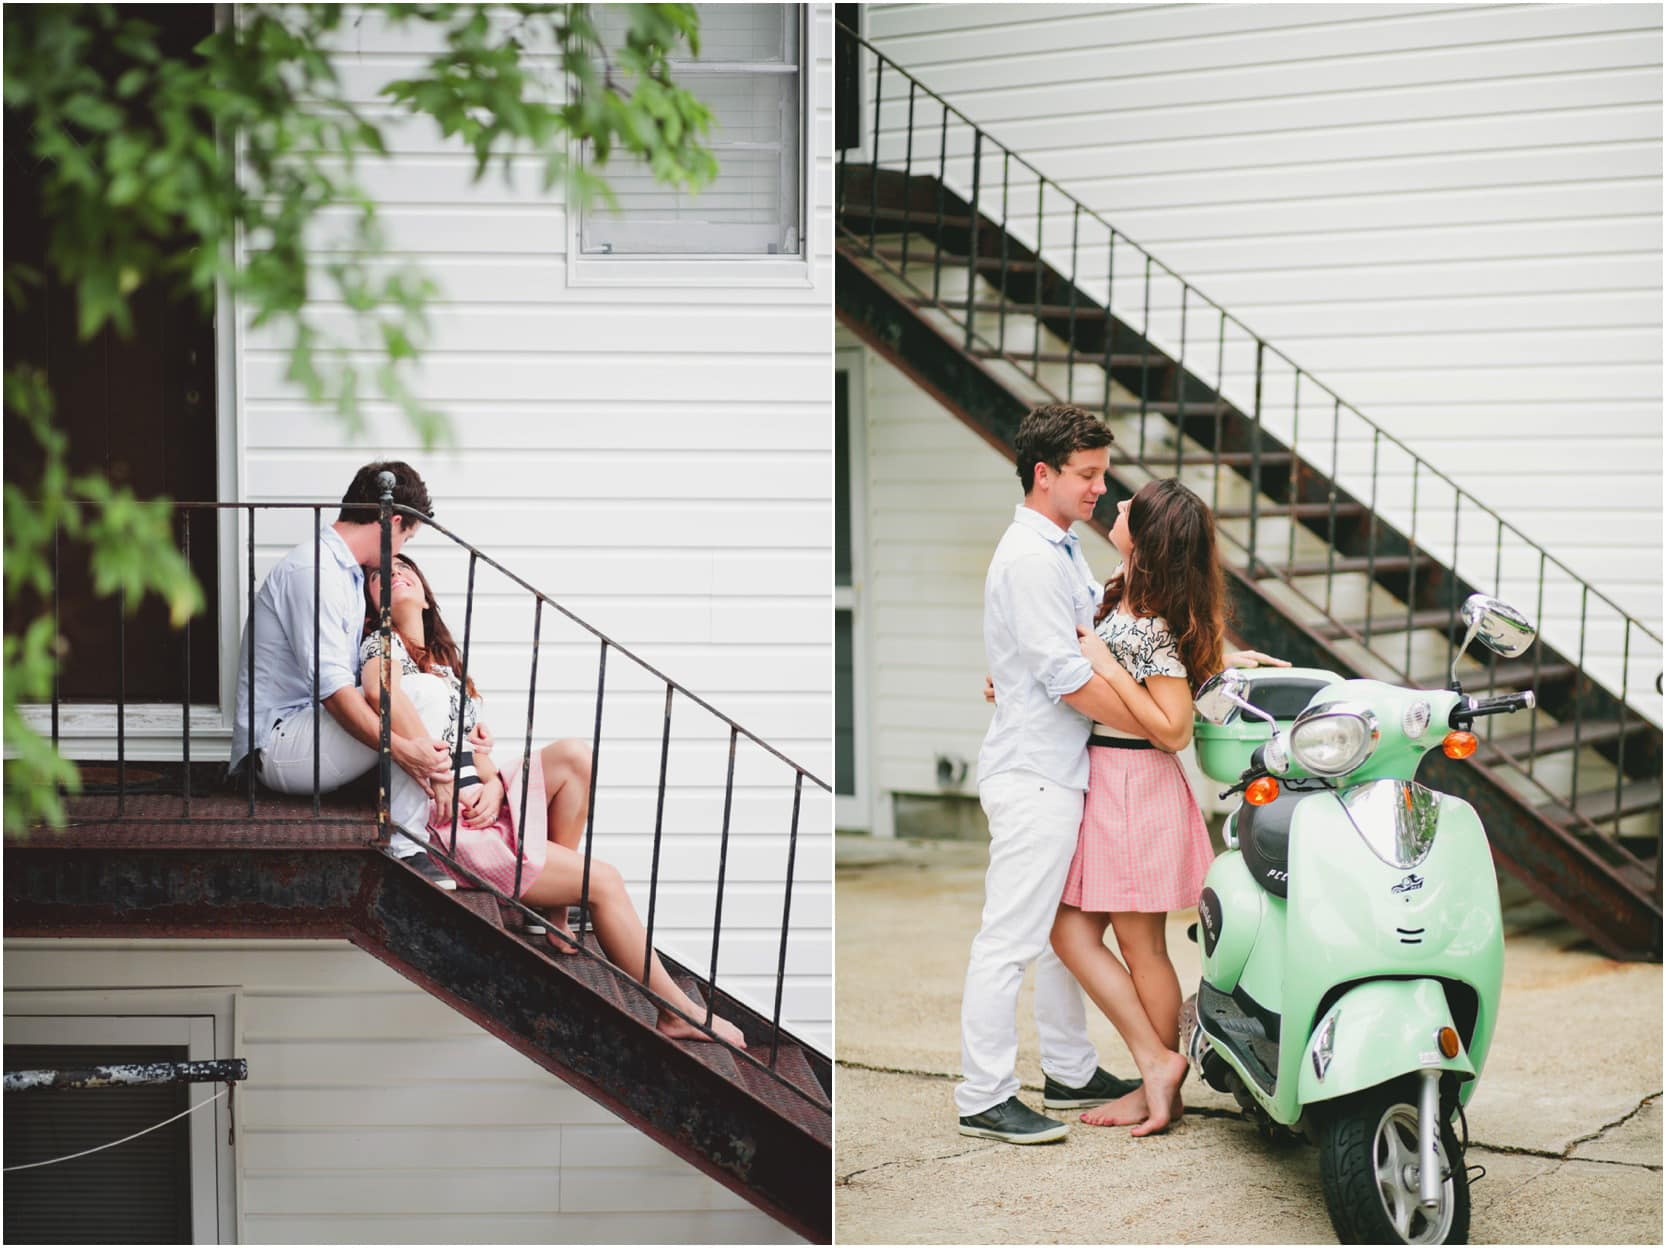 domjo_engagements__6_blogstomped